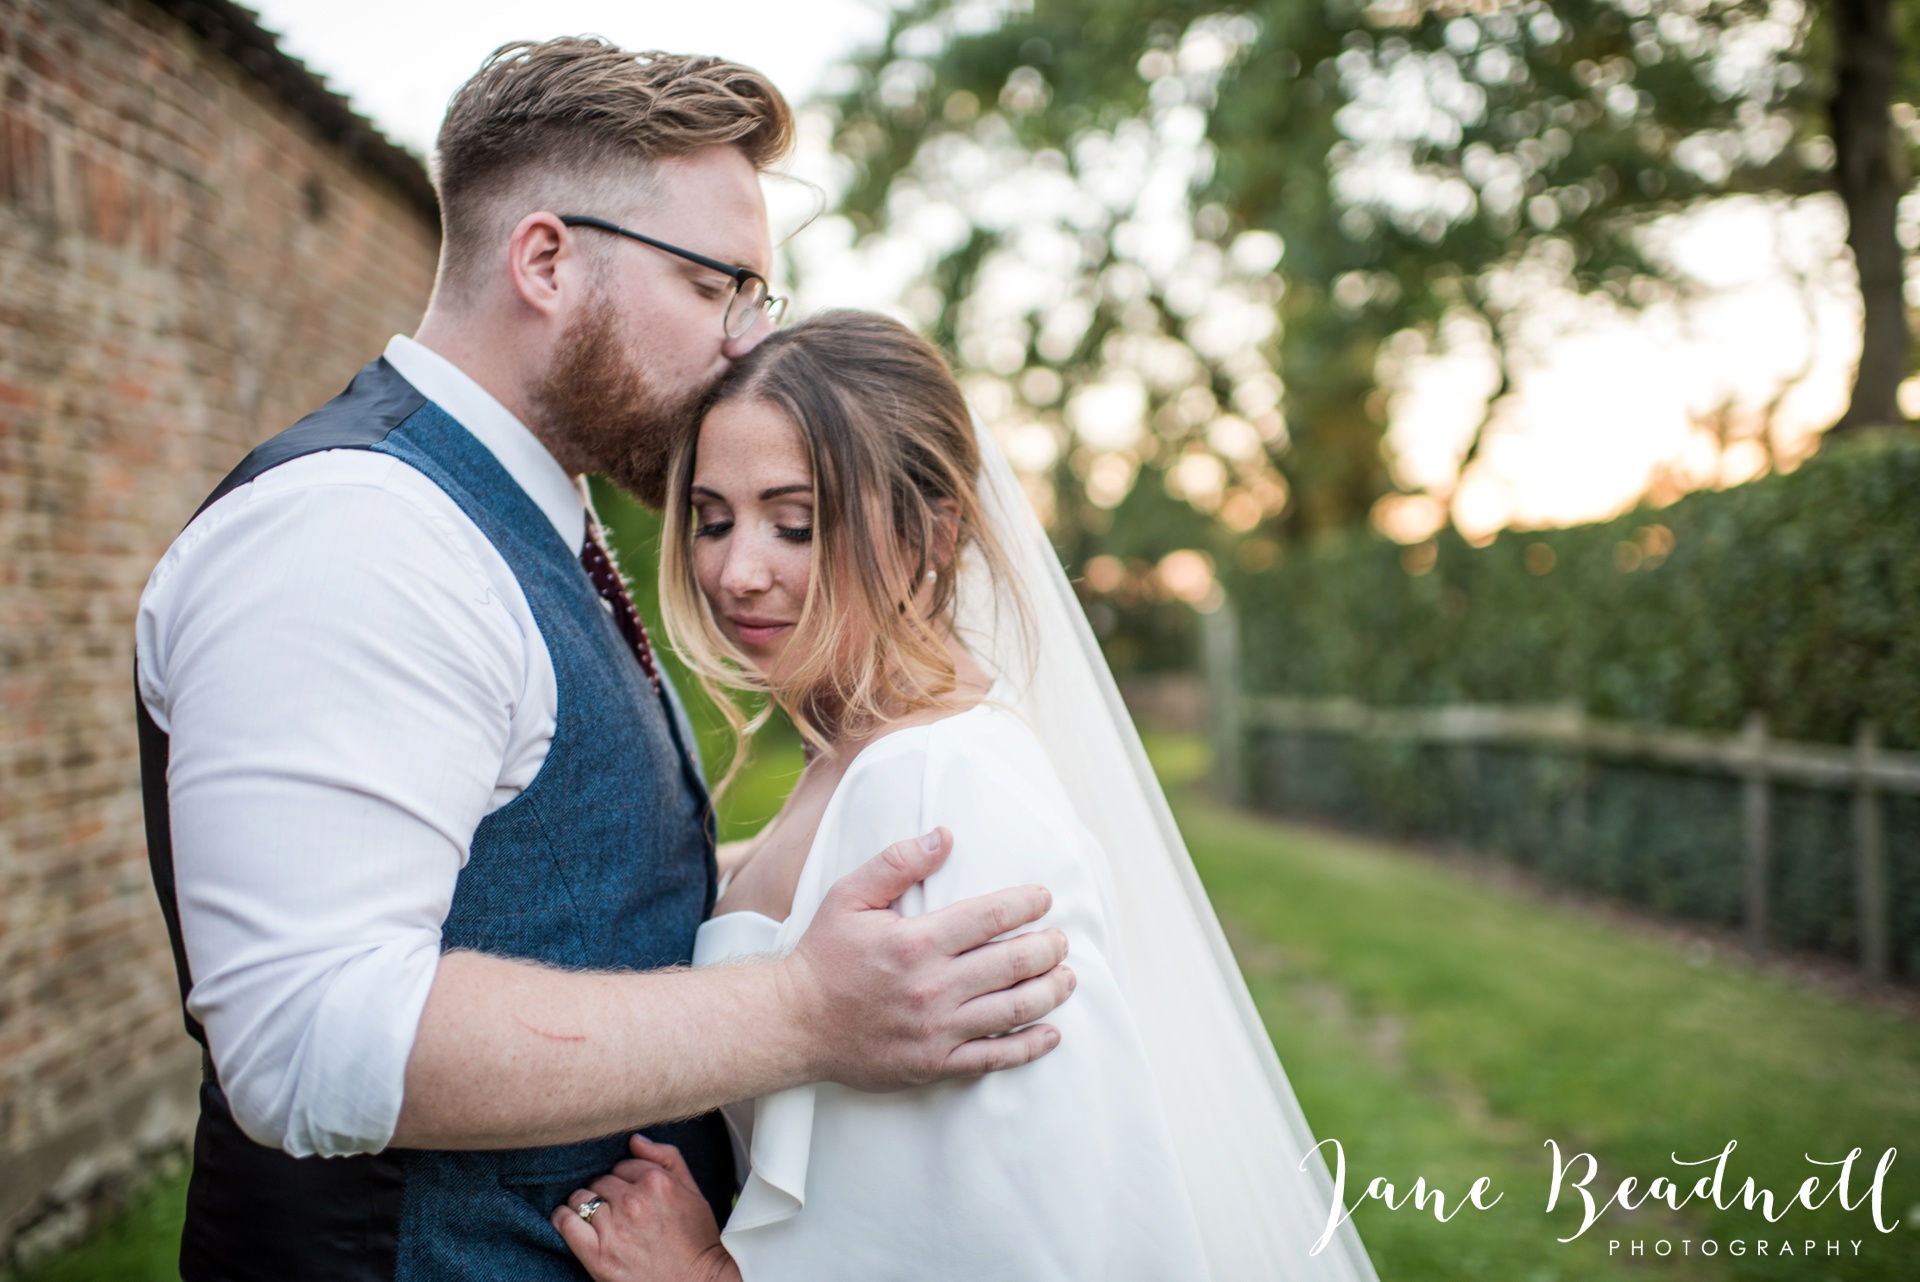 yorkshire-fine-art-wedding-photographer-jane-beadnell-photography_0015